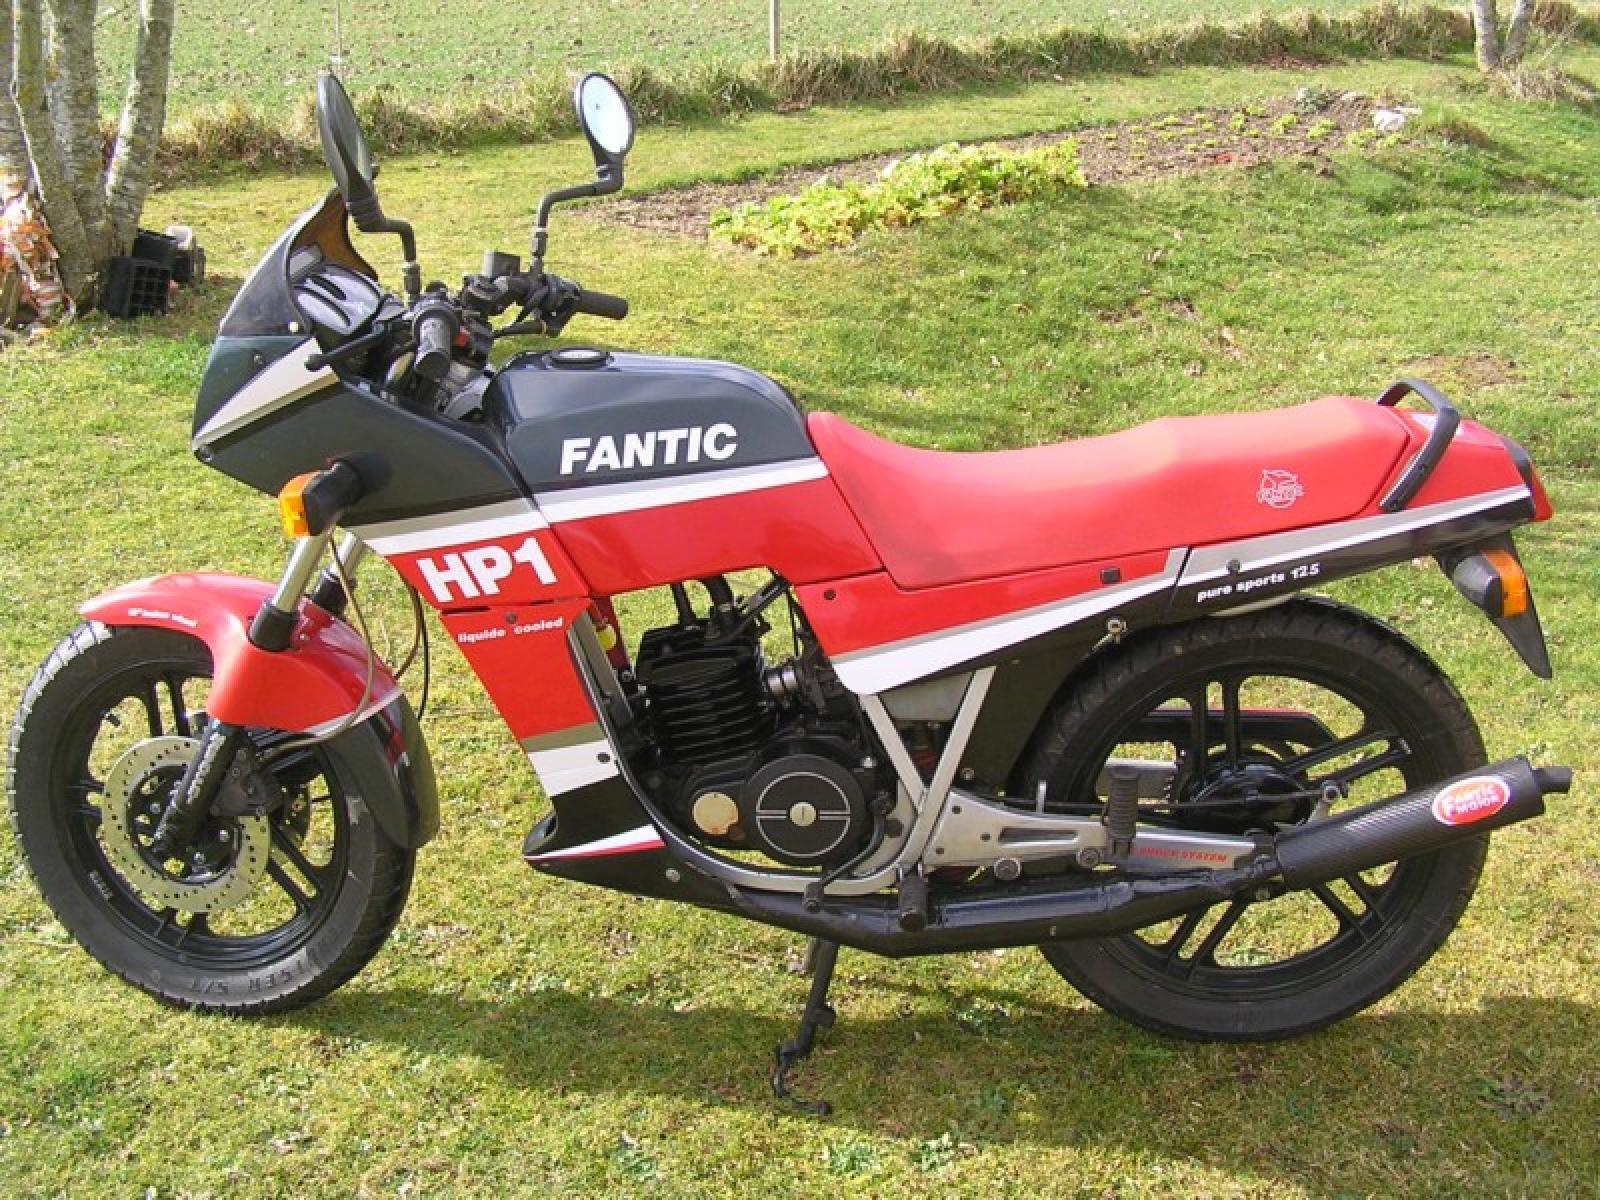 Fantic 125 Sport HP 1 1990 images #72381